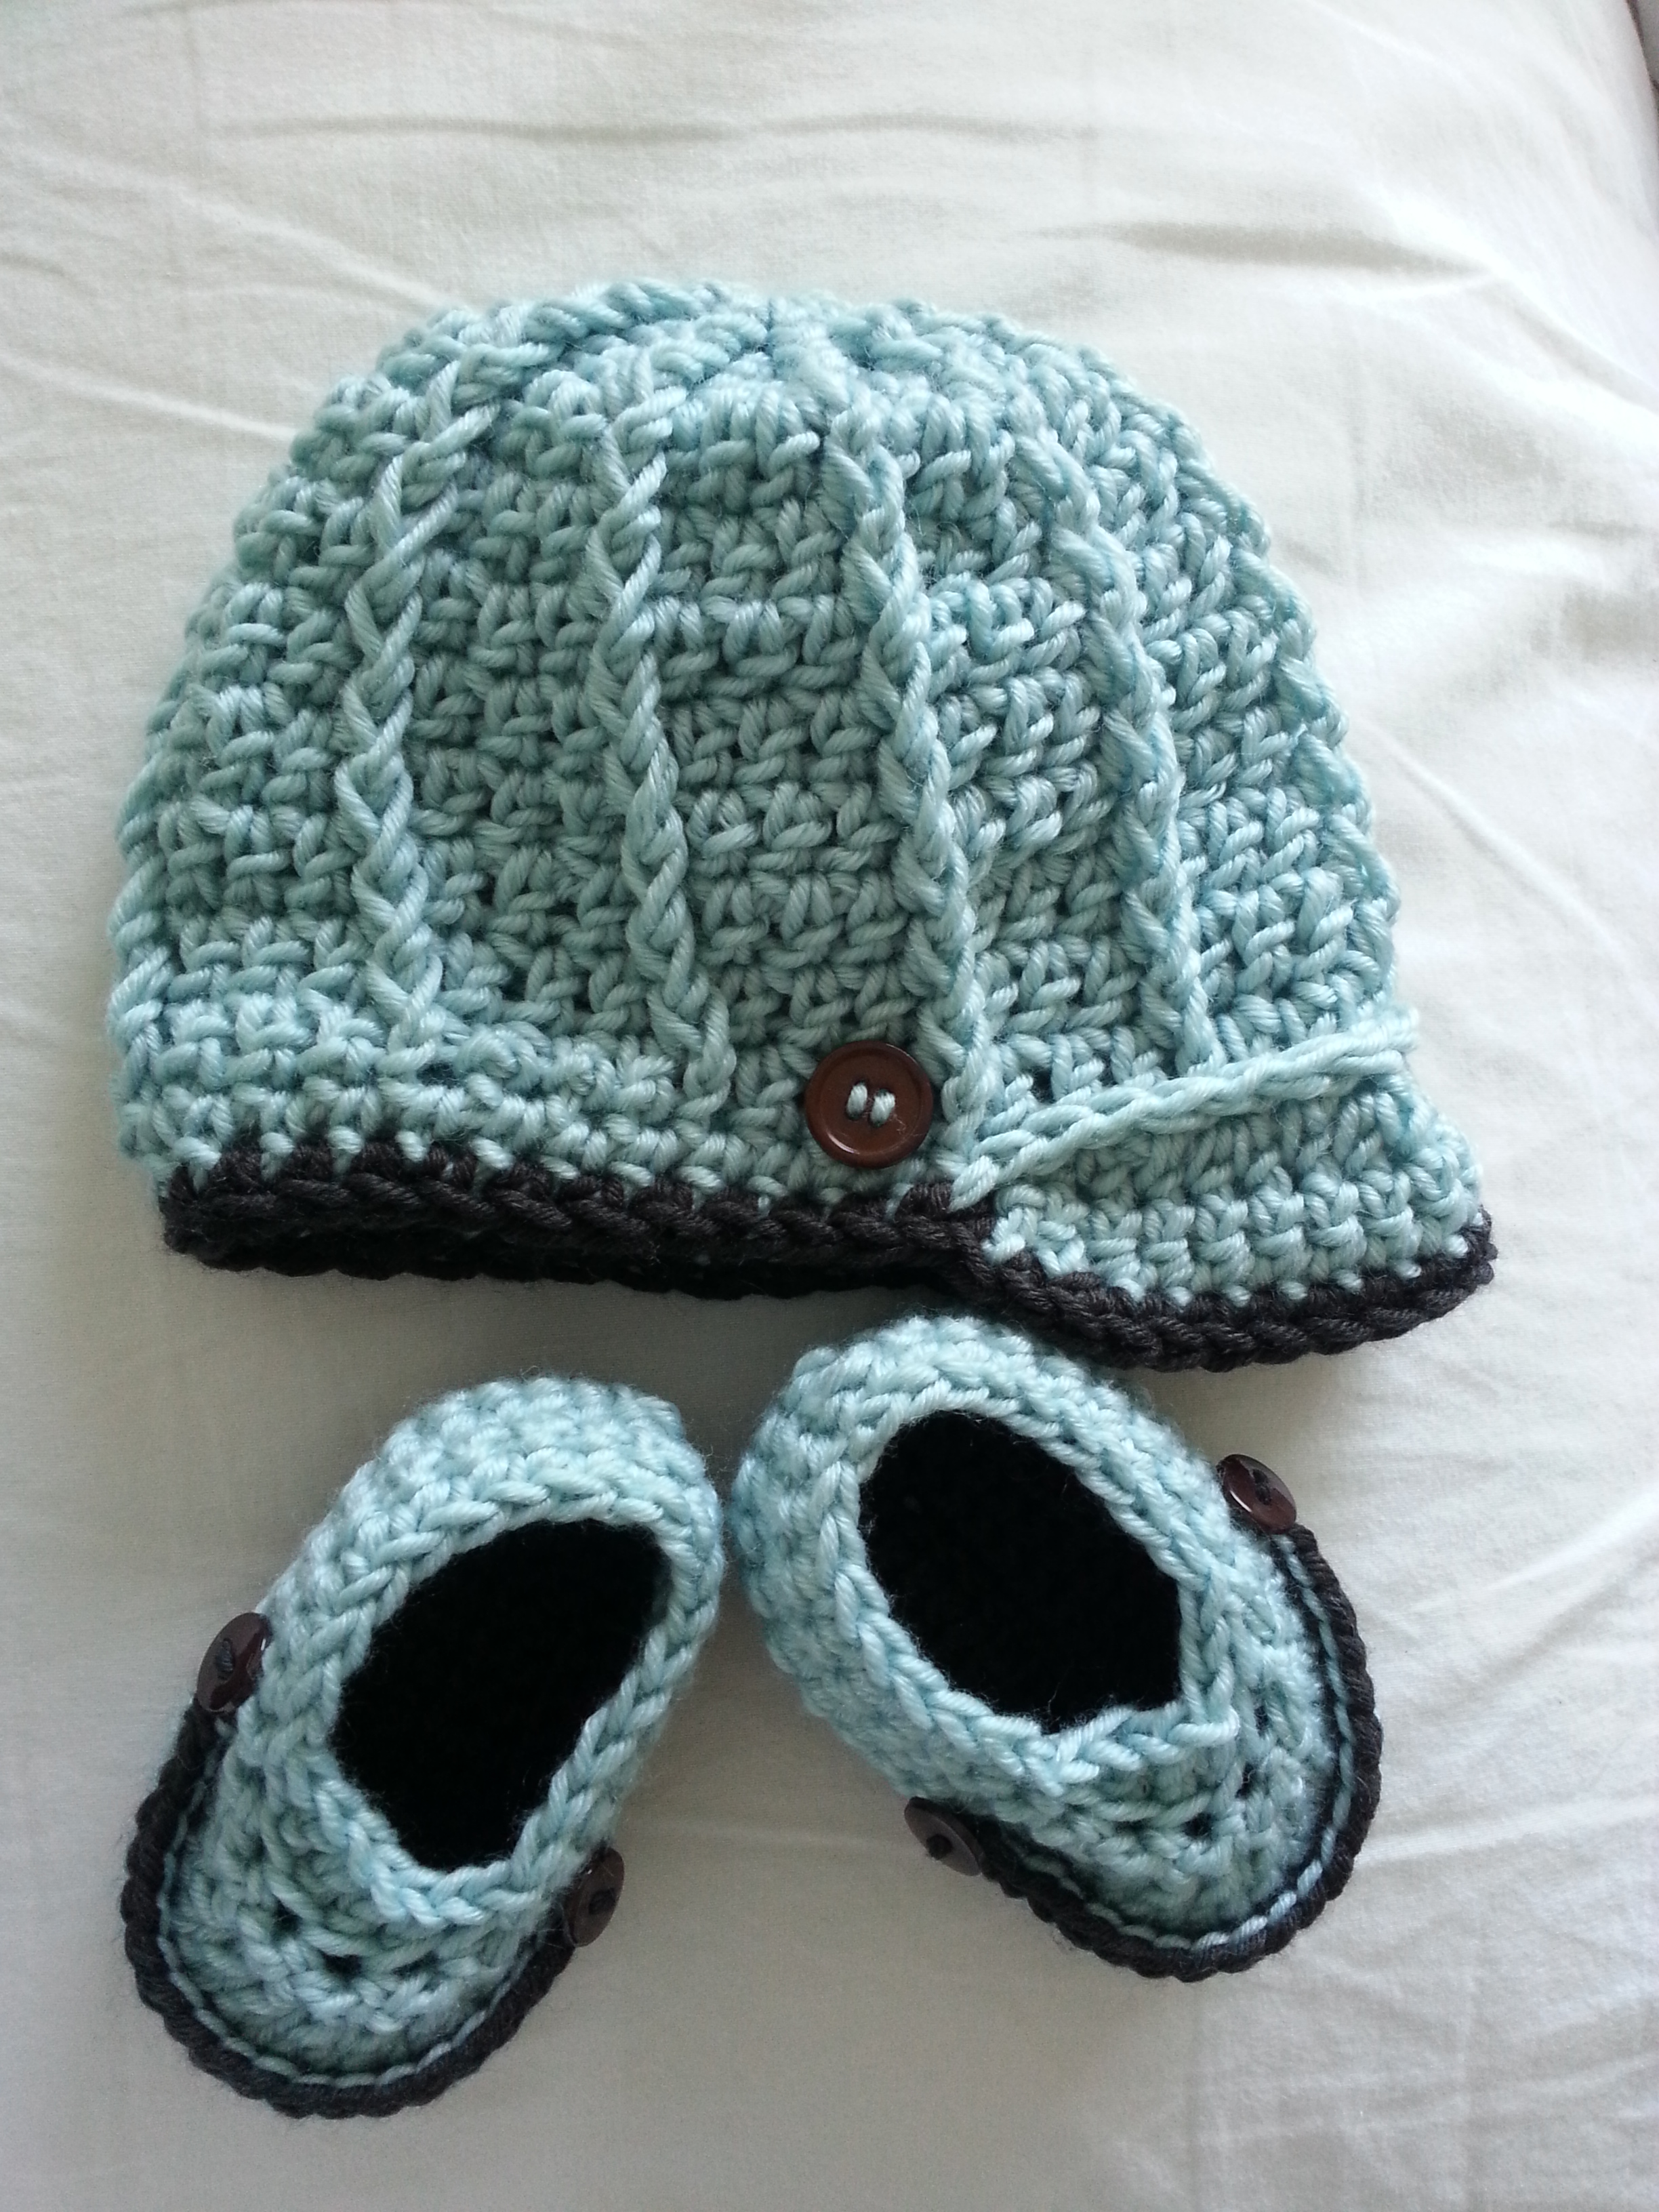 Free Crochet Patterns For Newborn Baby Hats : Newborn Baby Boy Crochet Hat & Booties Set ...